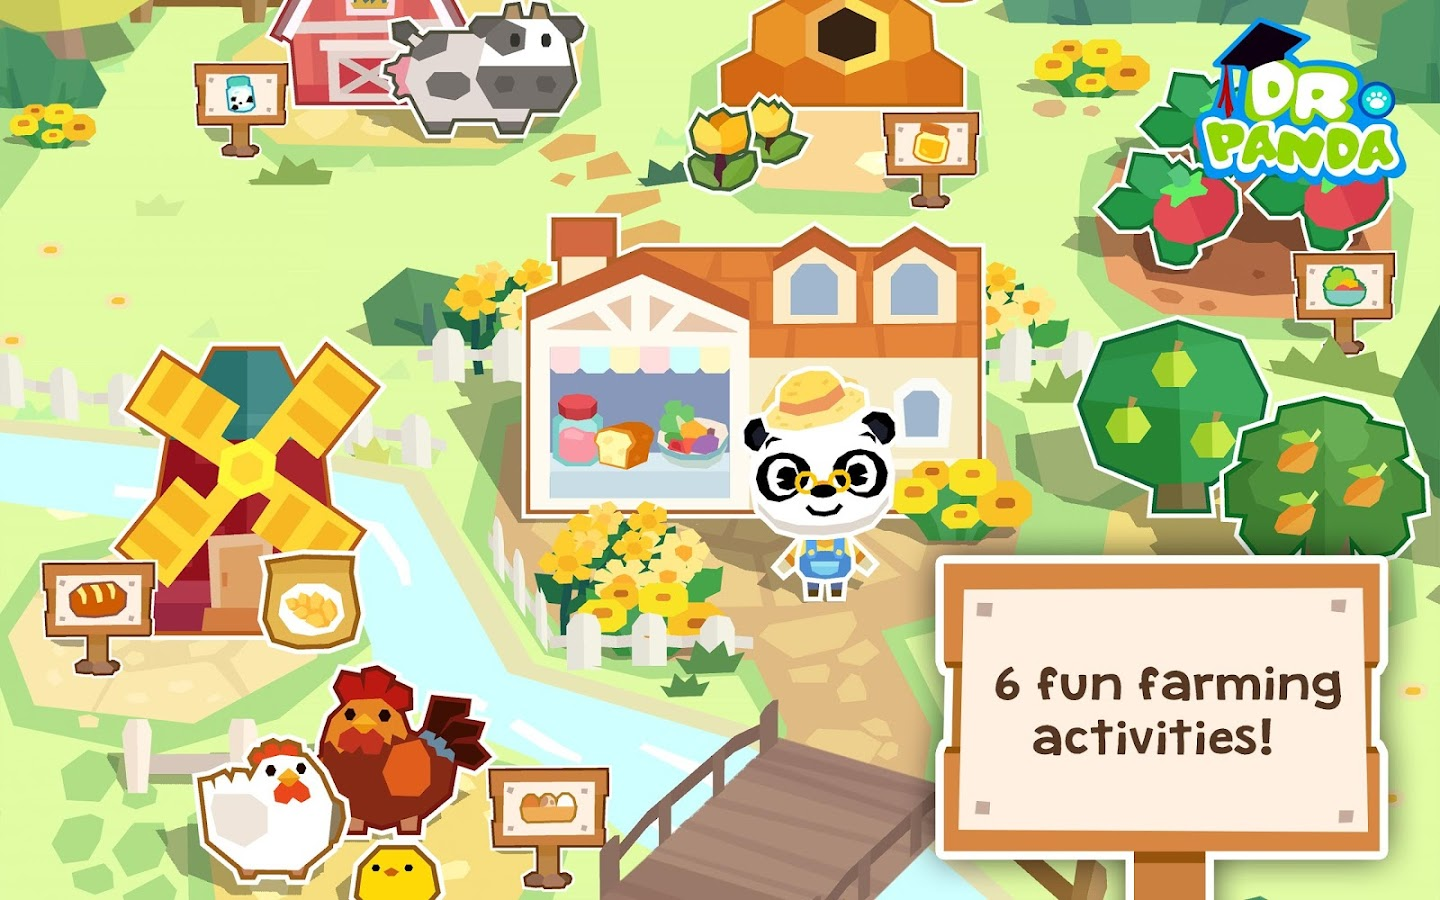 Dr. Panda Farm Screenshot 10